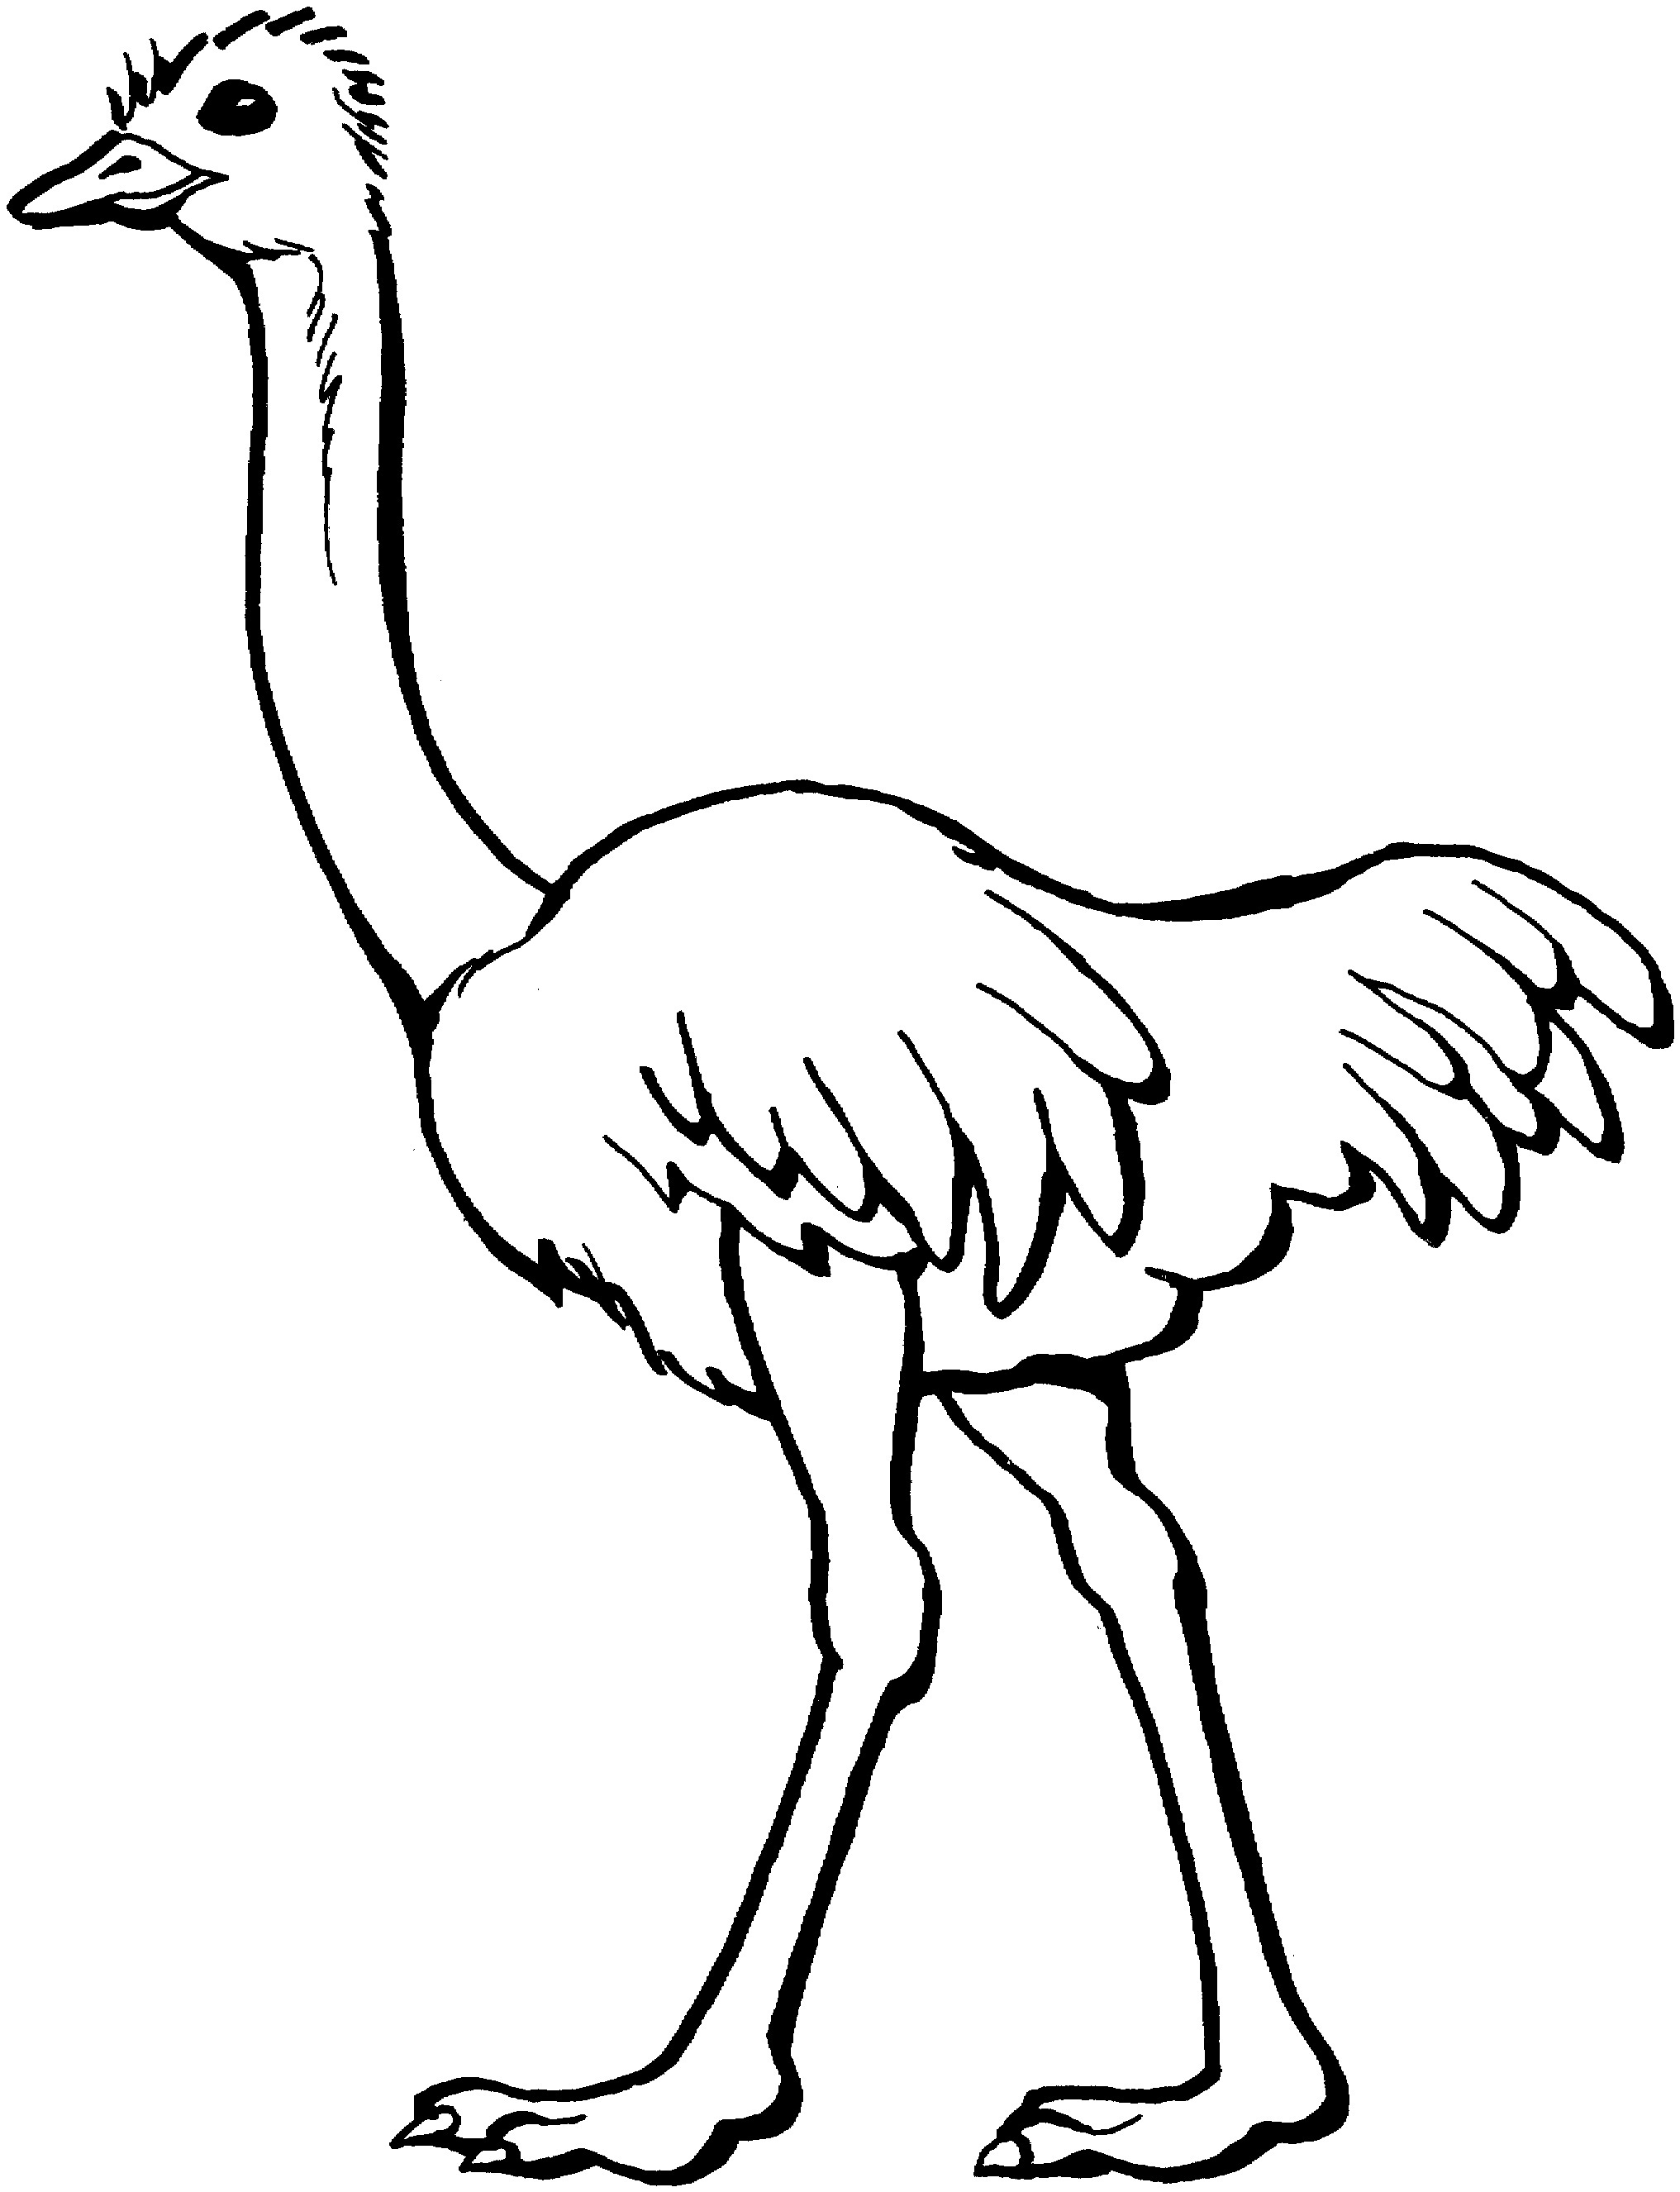 Free printable ostrich coloring pages for kids for Fun coloring pages for kids